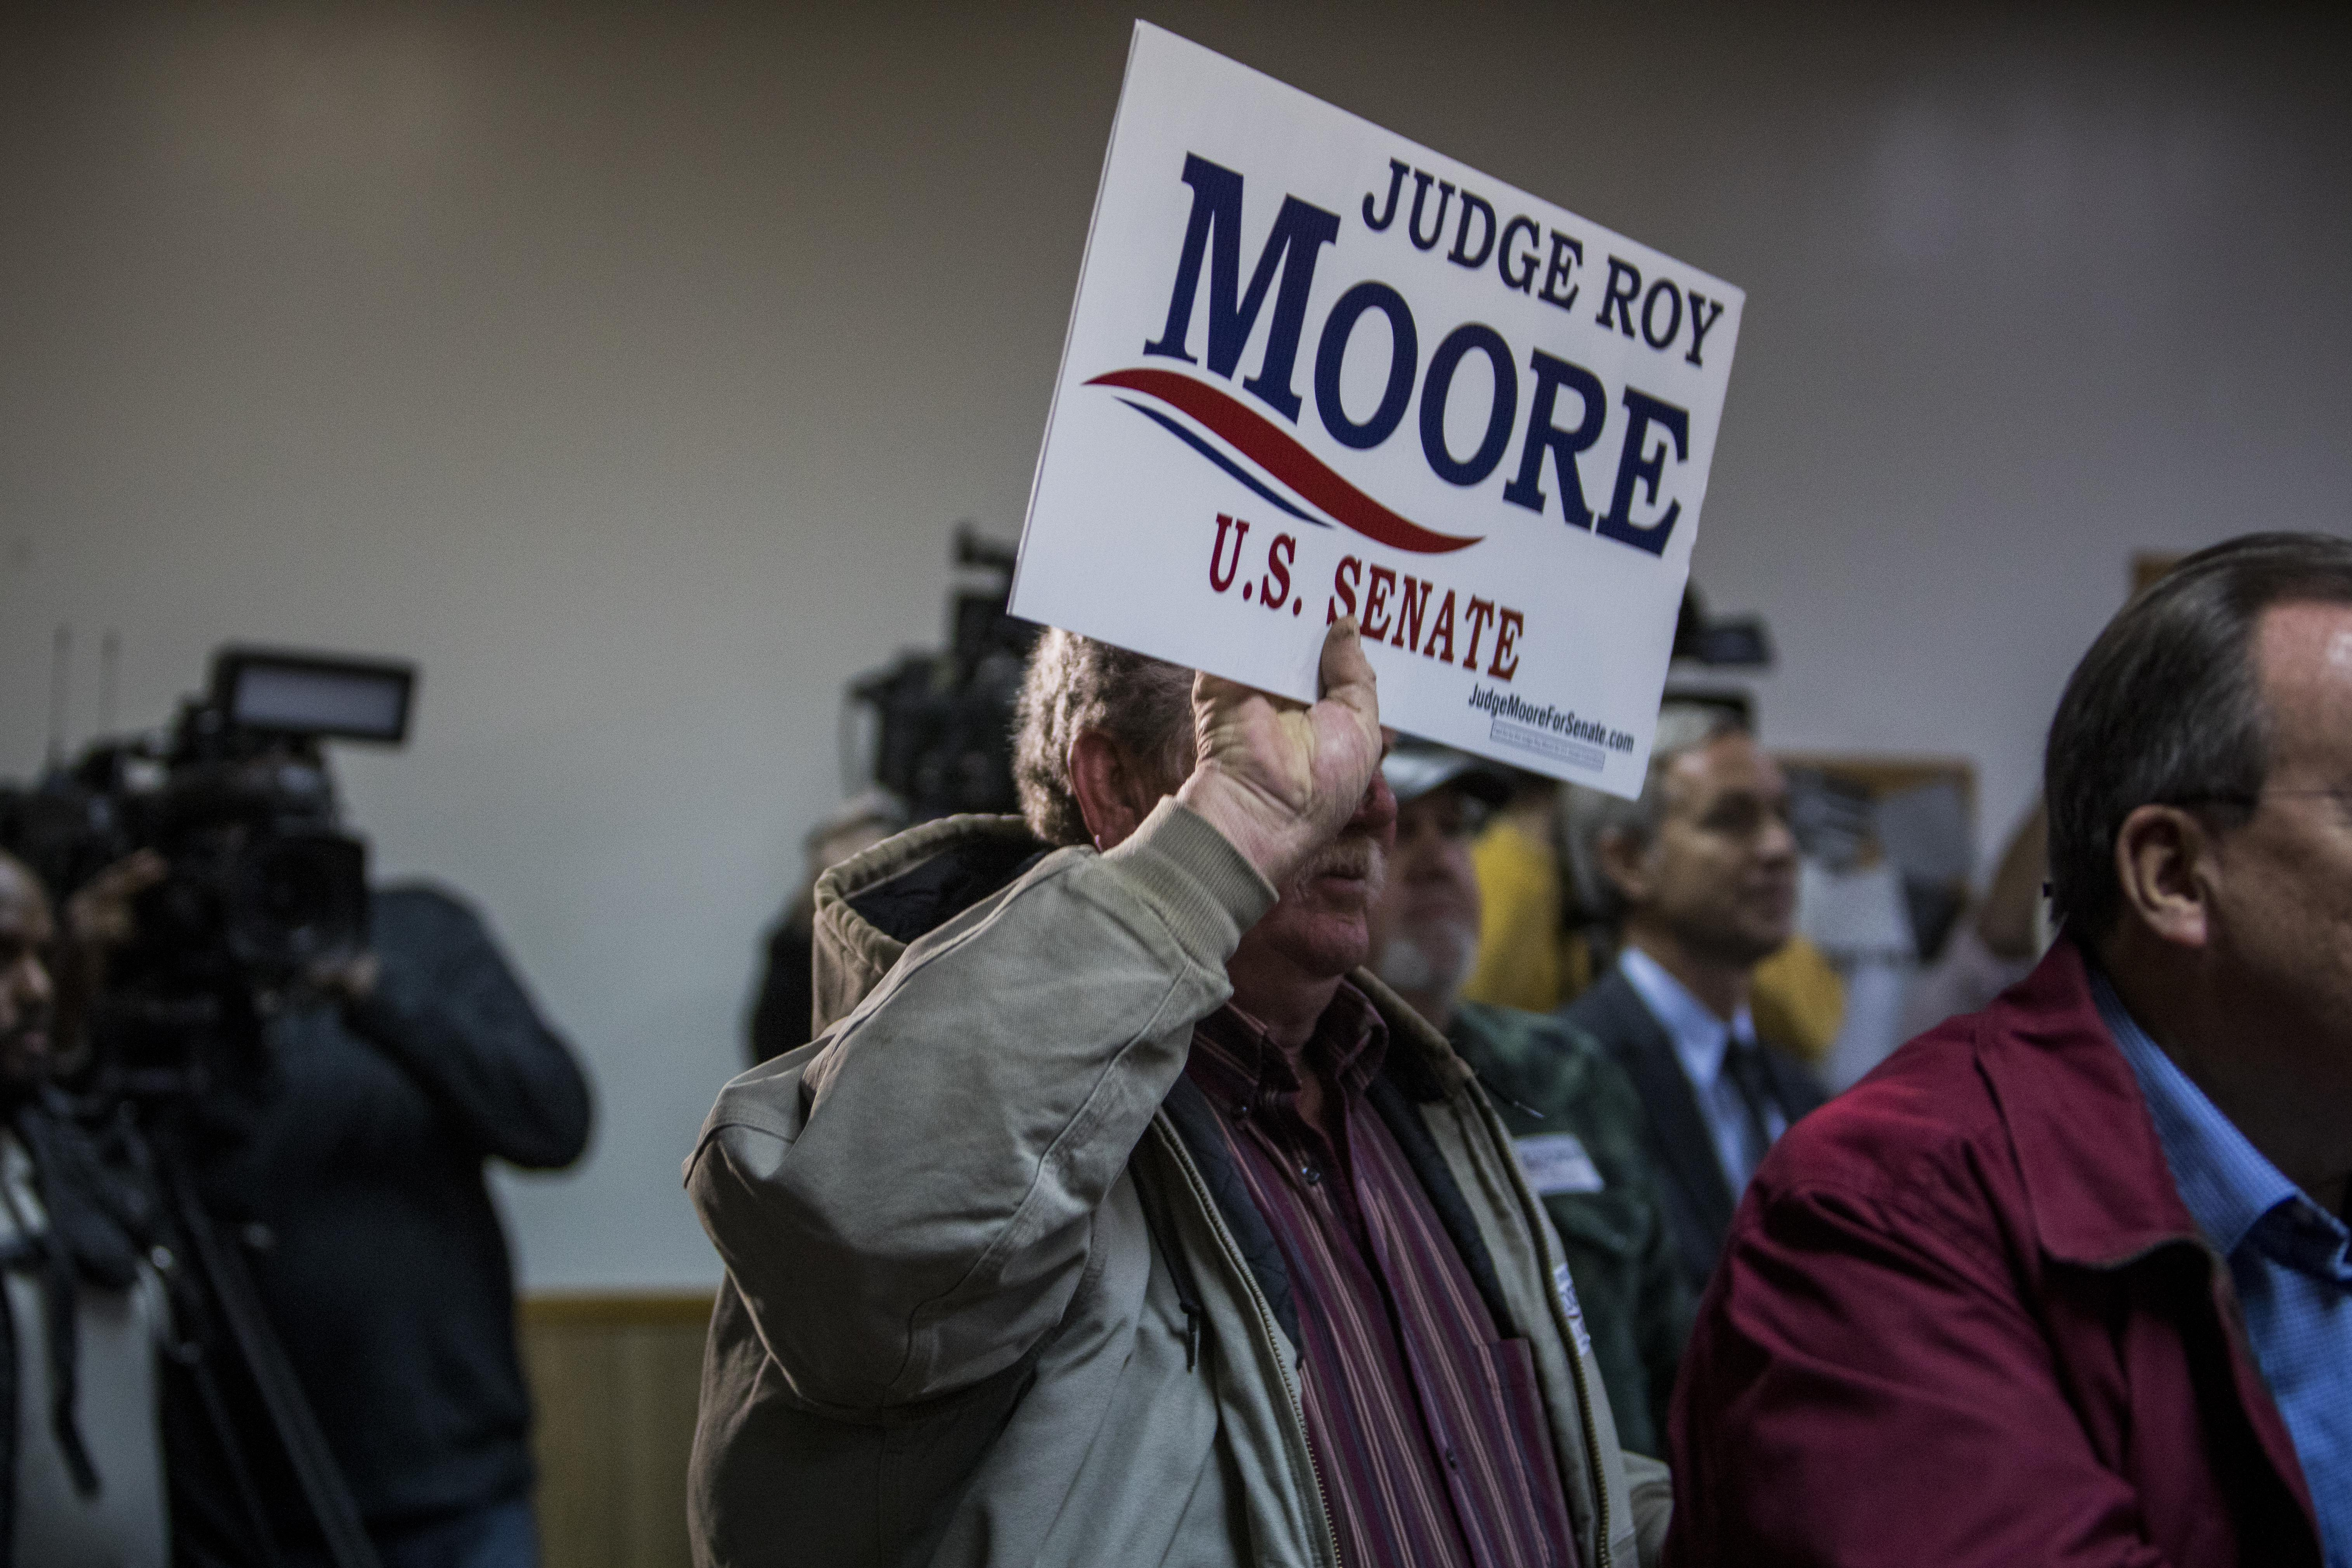 HENAGAR, AL - NOVEMBER 27: Judge Roy Moore supporters listen during a campaign rally on November 27, 2017 in Henagar, Alabama. Over 100 people turned out to the event packing the Henagar Event Center. (Photo by Joe Buglewicz/Getty Images)